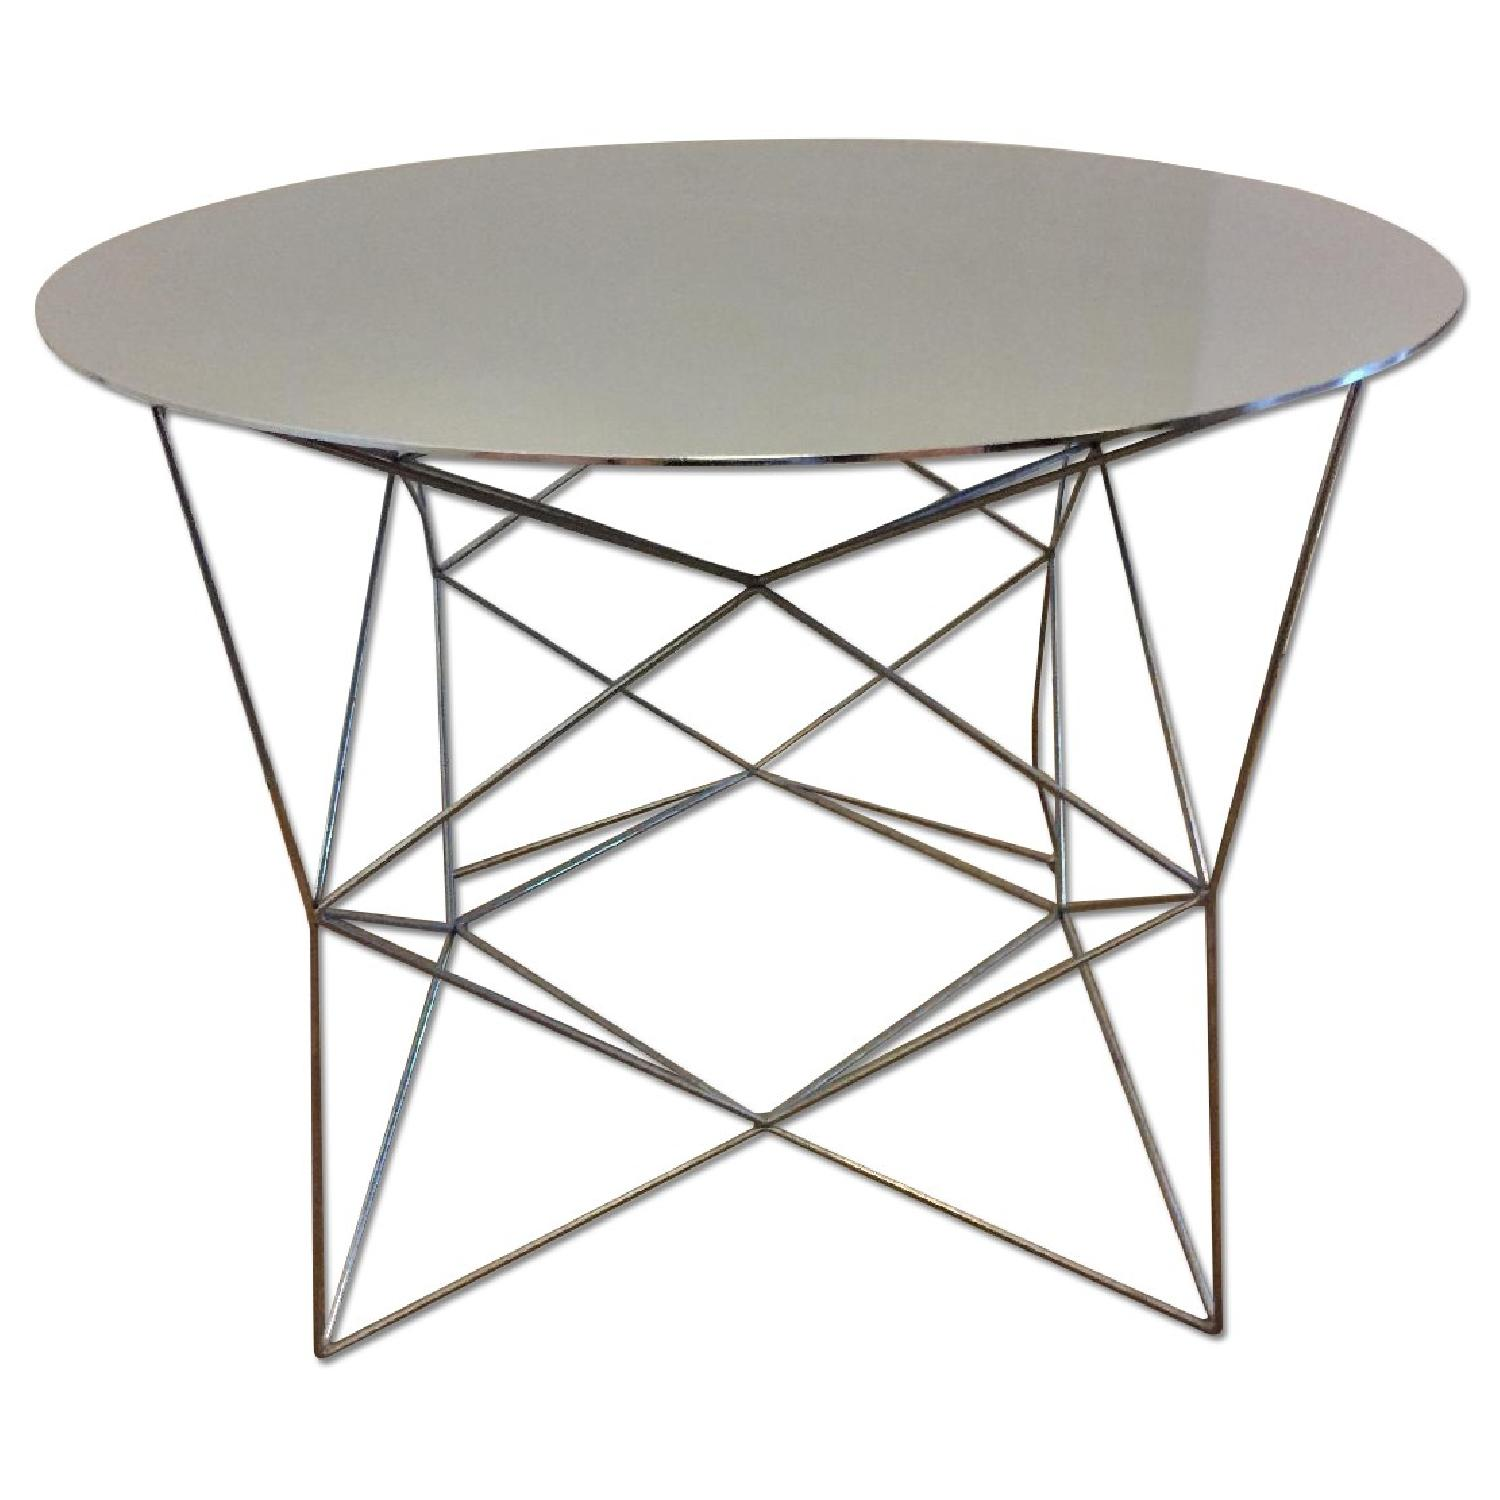 West Elm Oragami Table - image-0